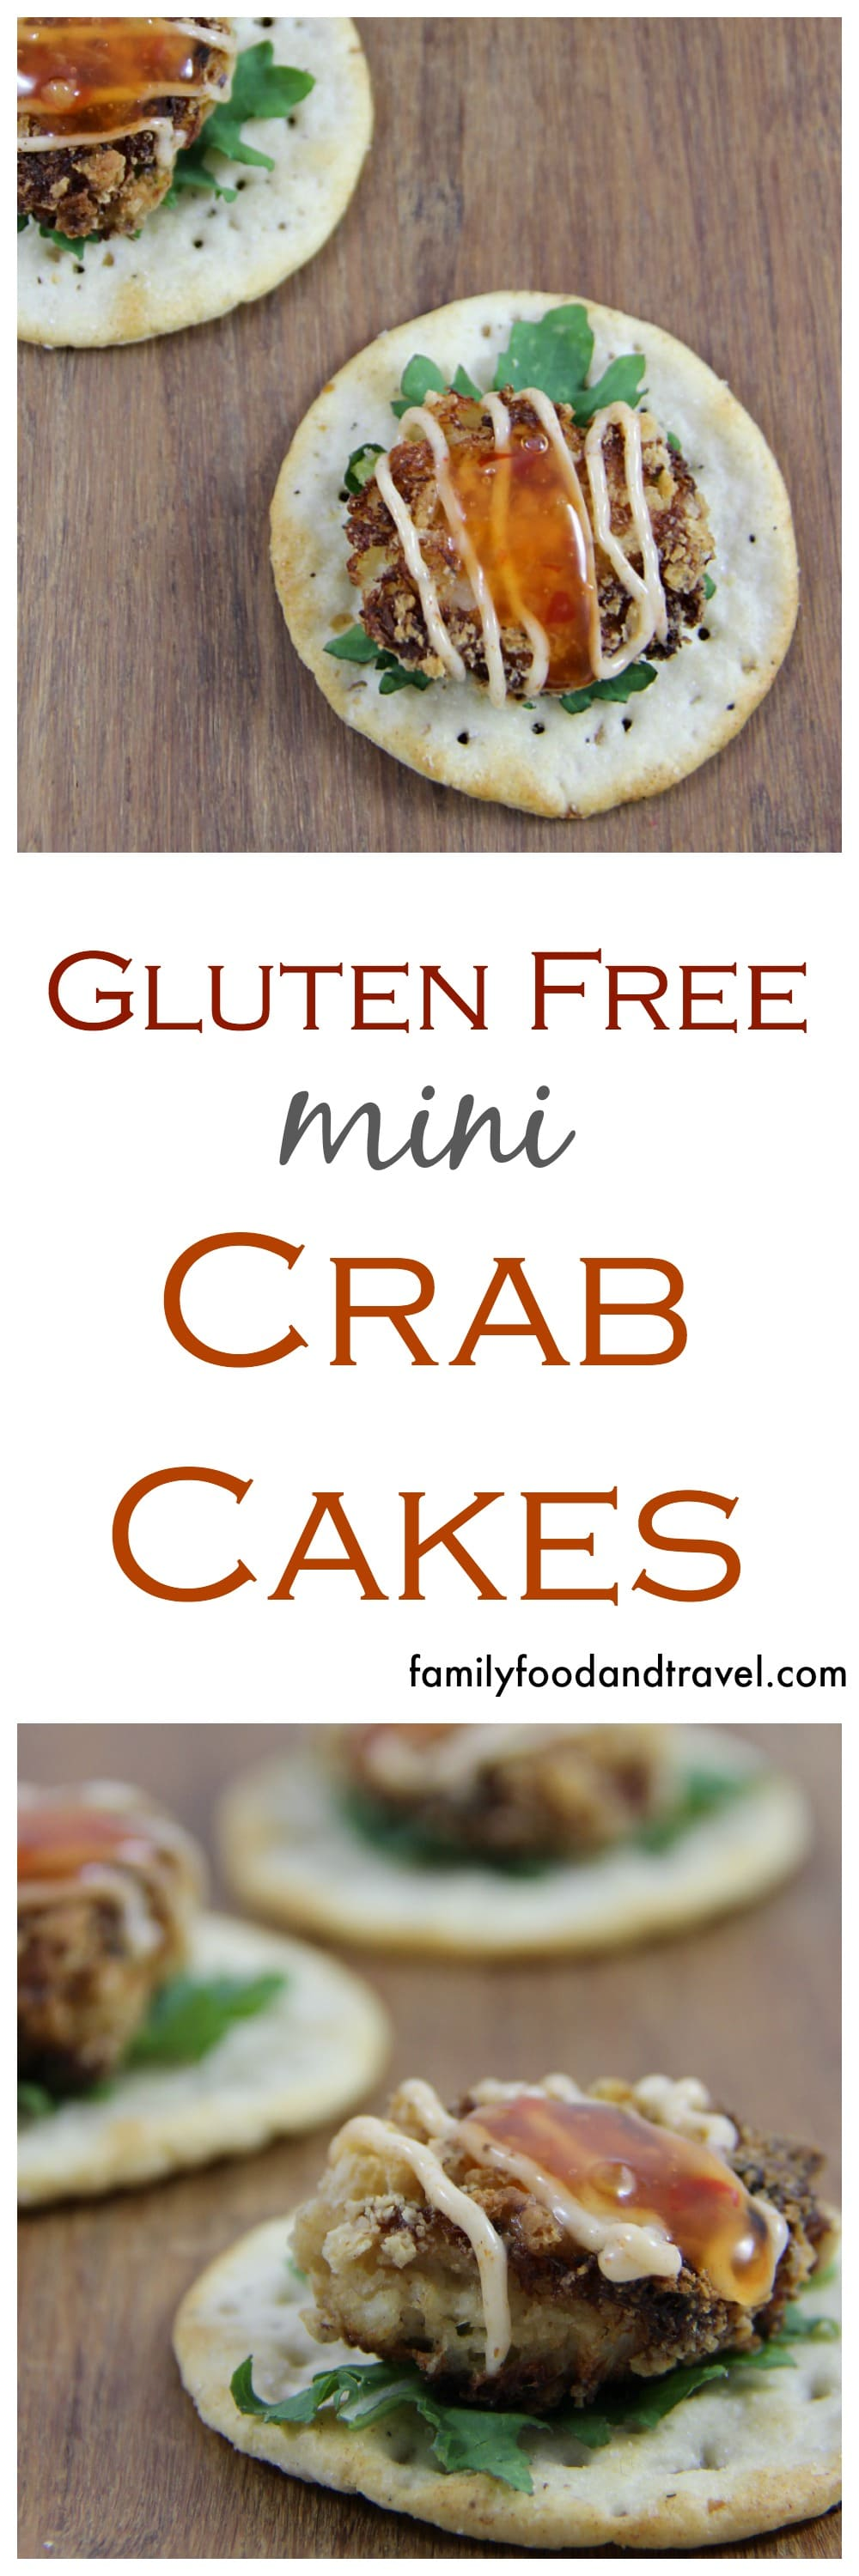 Gluten Free Mini Crab Cakes - Family Food And Travel